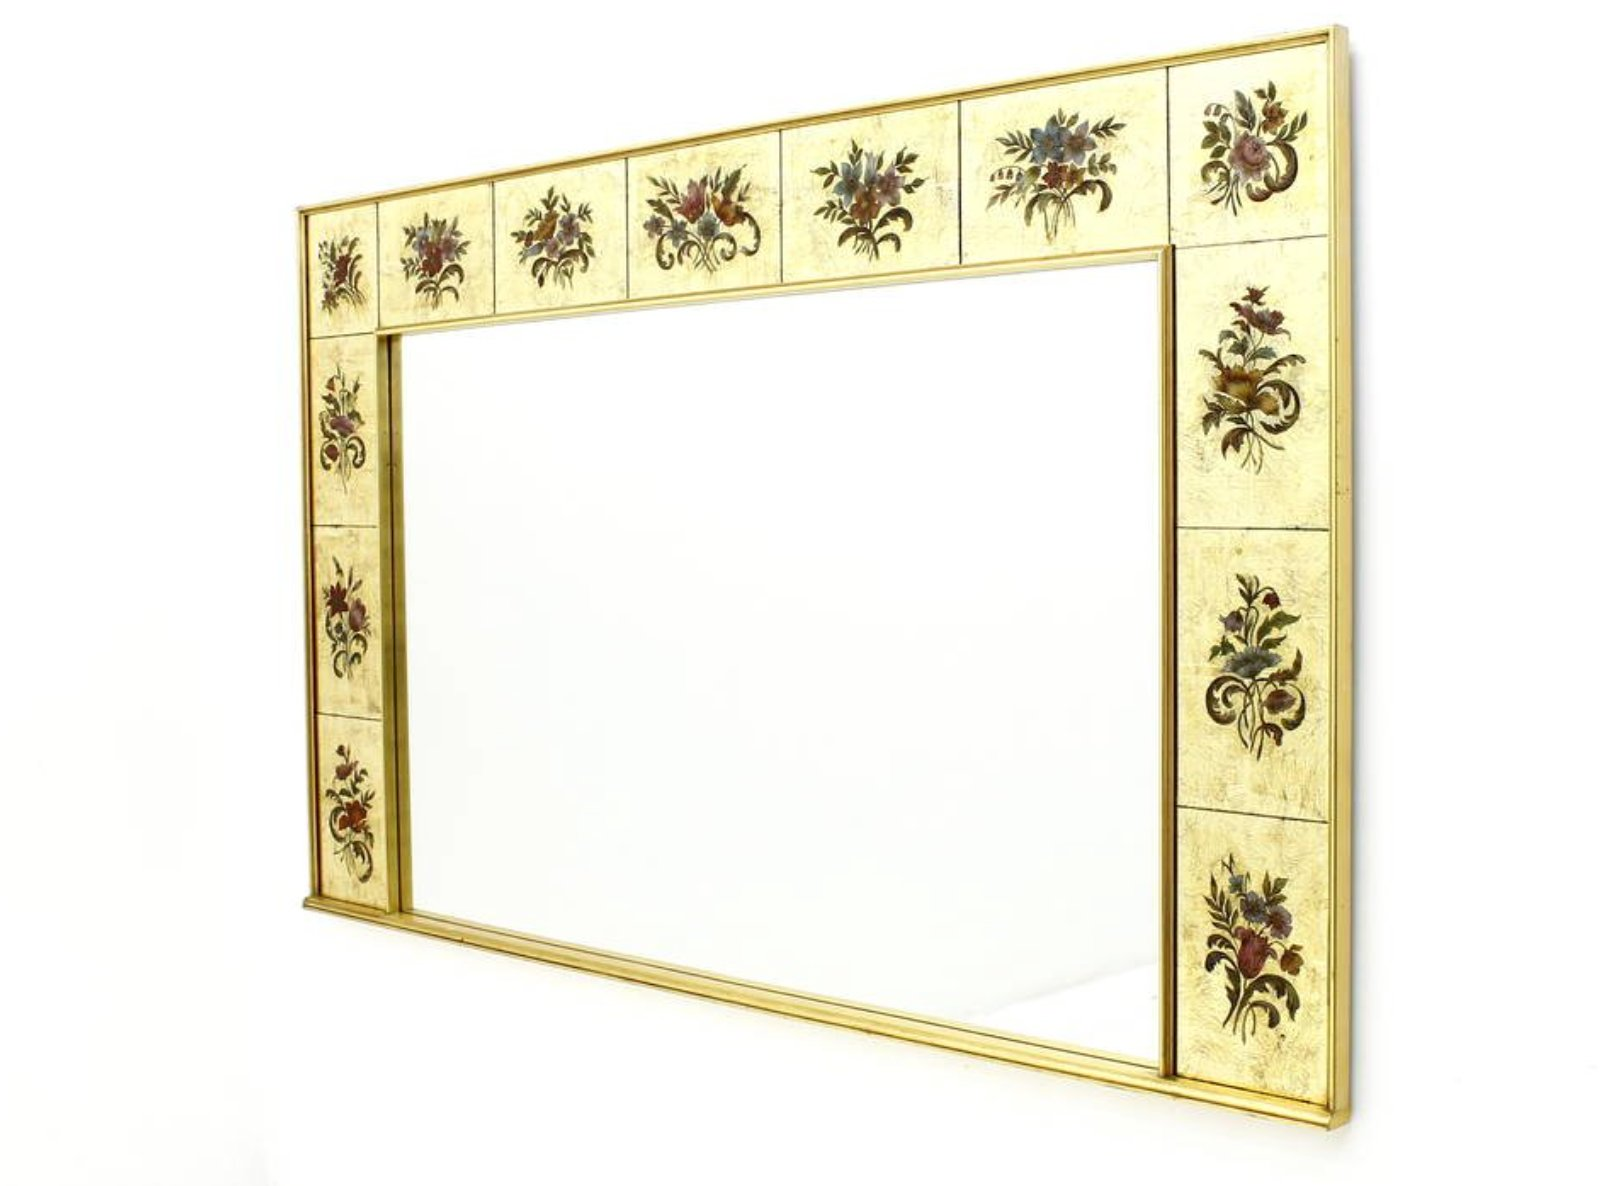 Grand miroir mural d coratif 1980s en vente sur pamono for Grand miroir decoratif